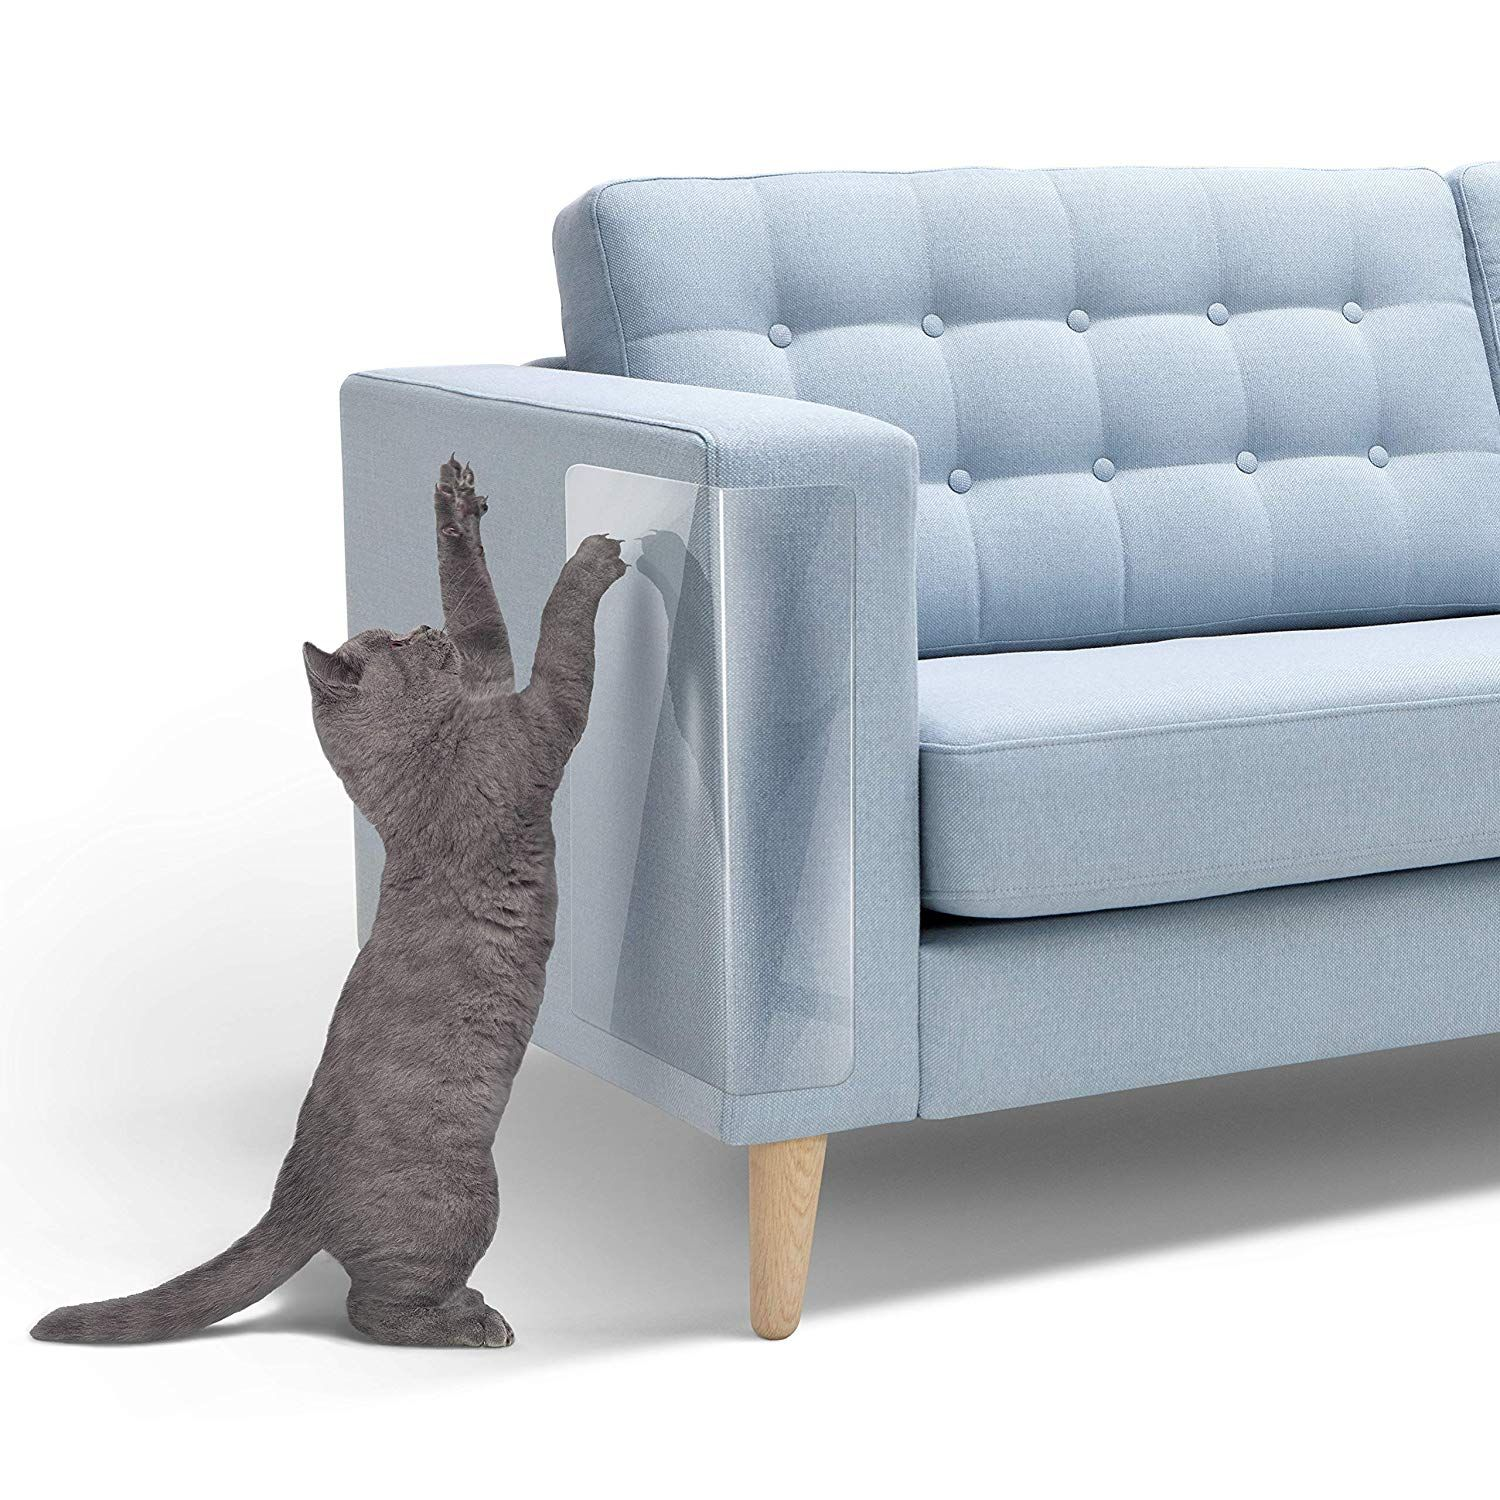 Couch Defender For Cats Cowhide Furniture Furniture Scratches